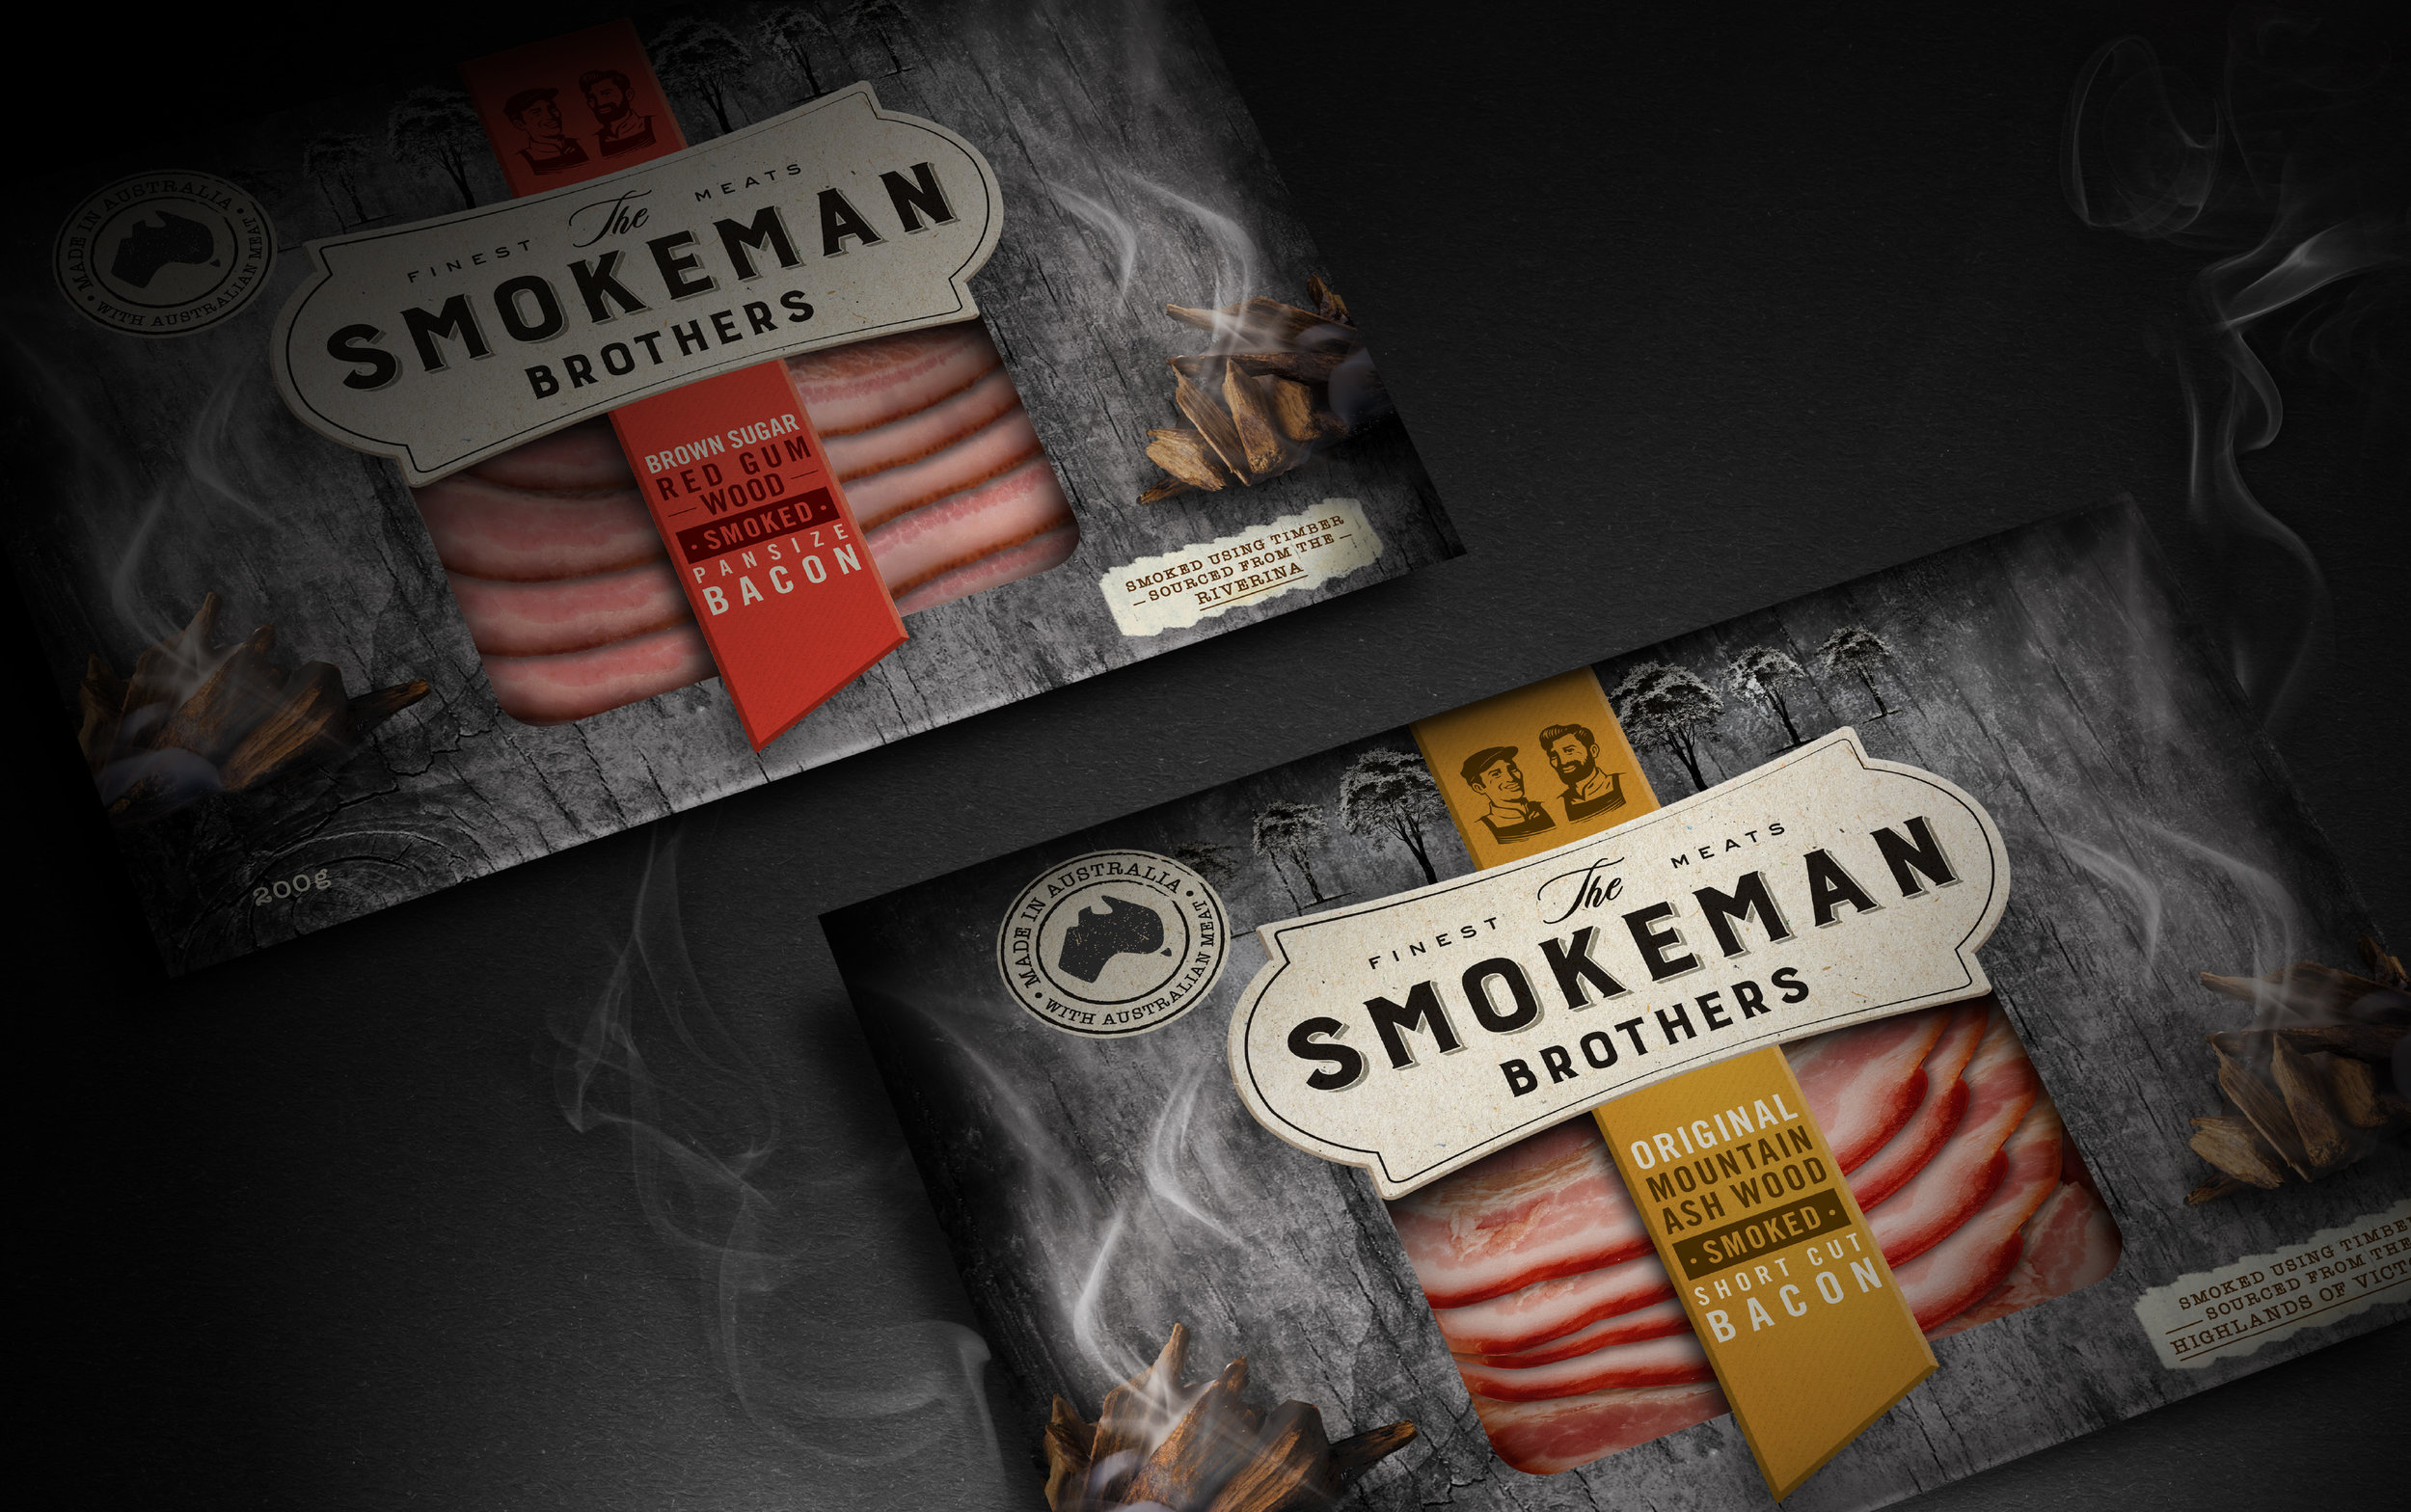 Our Revolution Smokeman Brothers Brand Design Logo Design Packaging Design Brand Strategy Brand Innovation Pie Packaging Food Design Food Brand Food Branding Food Packaging Food innovation Packaging Innovation Meat Packaging Meat Brand Smallgoods packaging Smallgoods branding